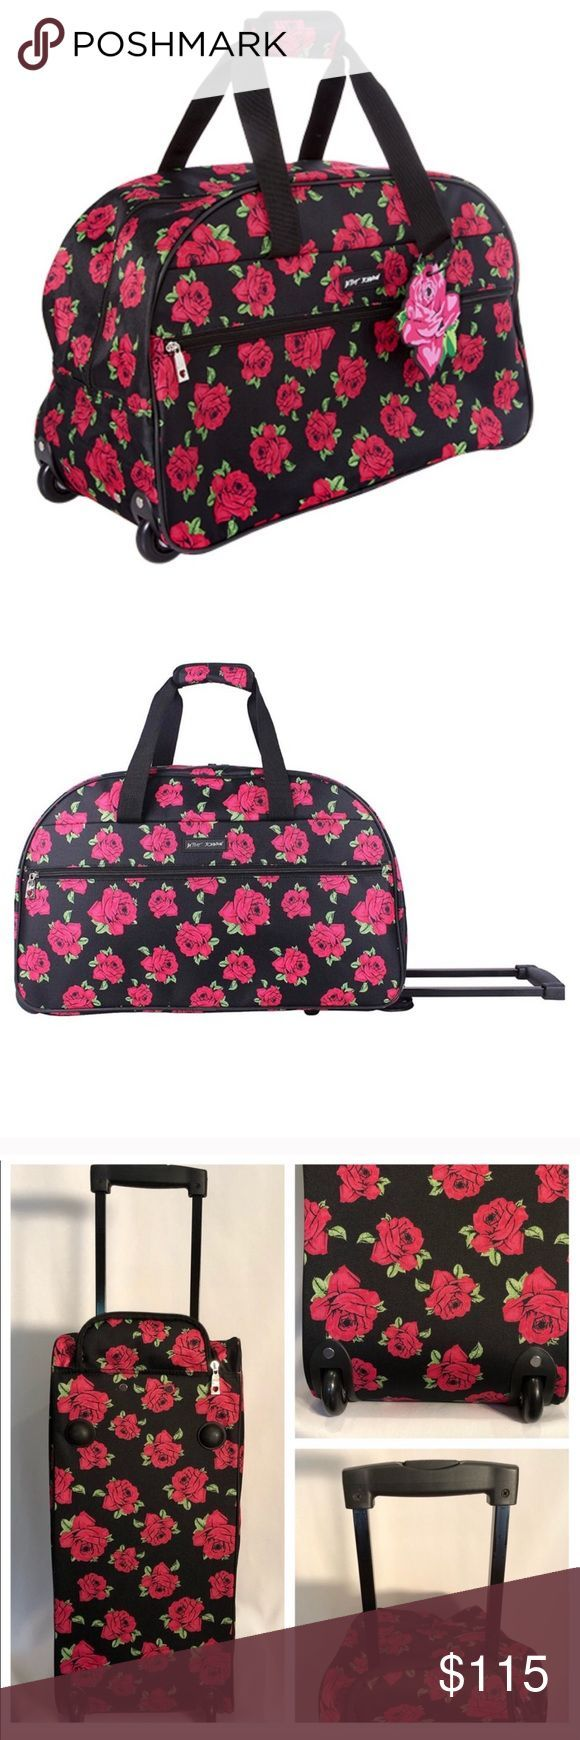 NWT Betsey Johnson wheeled Duffle bag Luggage NWT Roses print Lightweight const